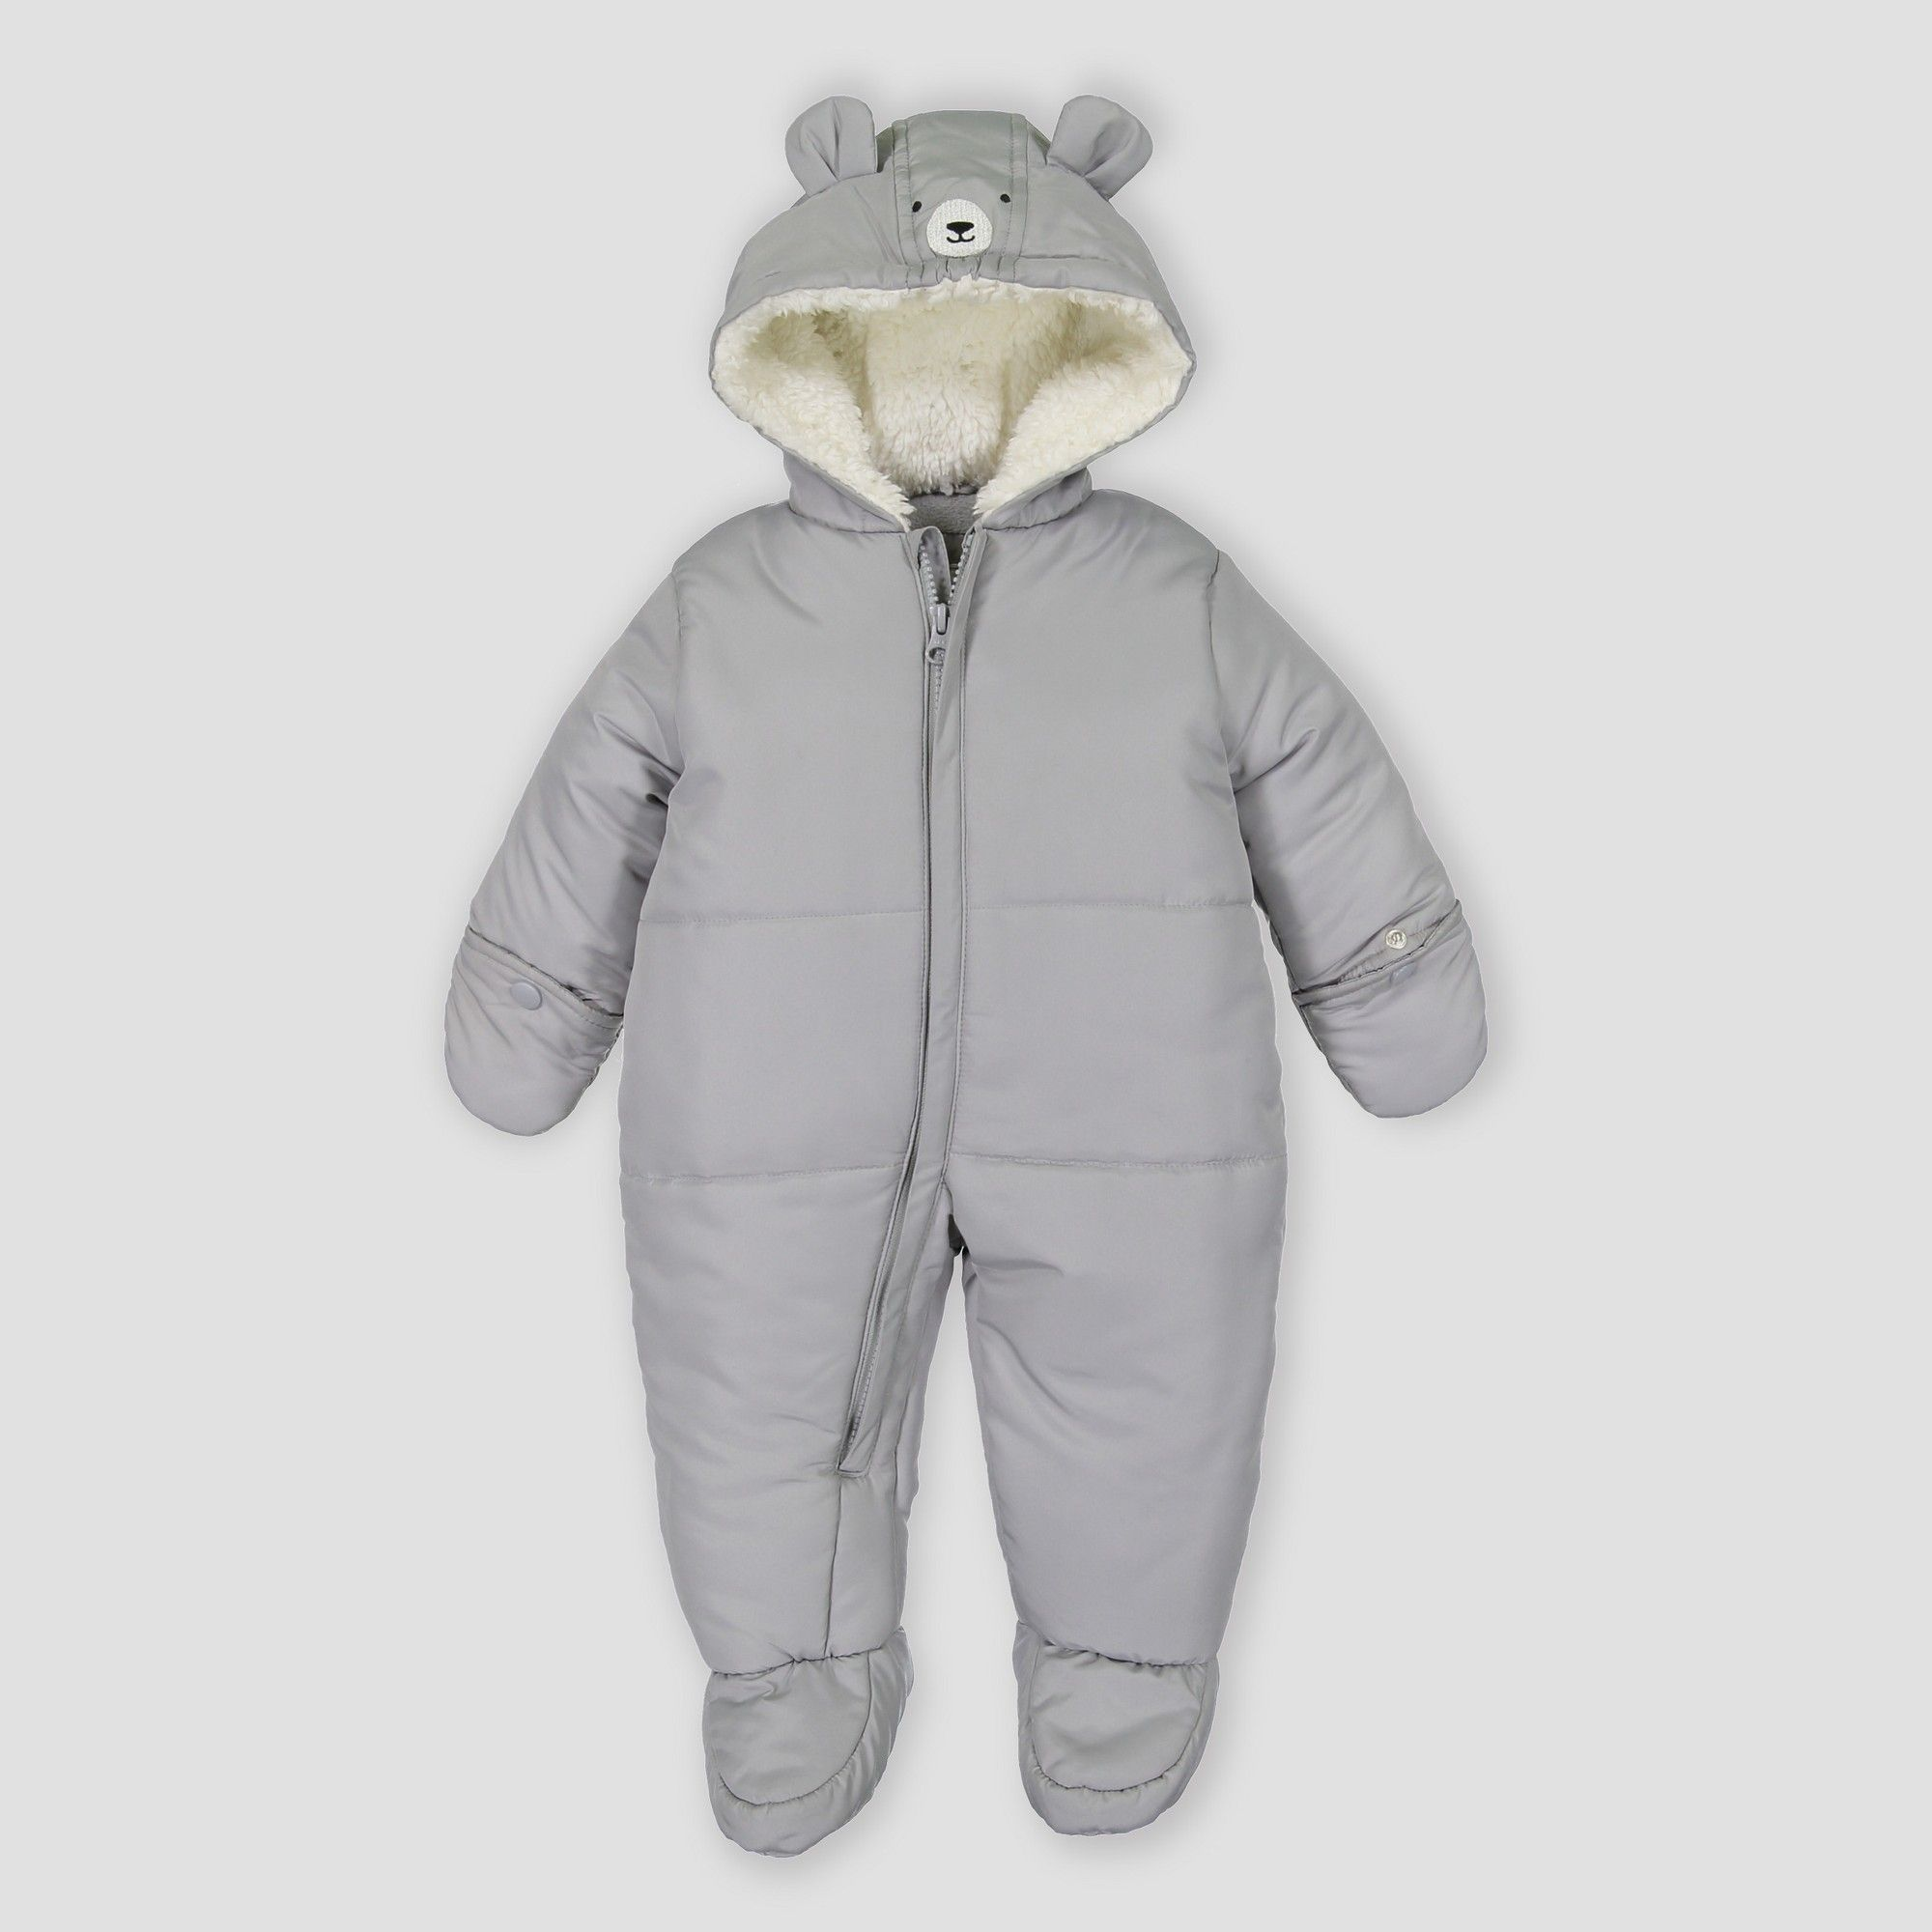 aa7bccecc Baby Boys' Snowsuit - Just One You made by carter's Gray Newborn ...